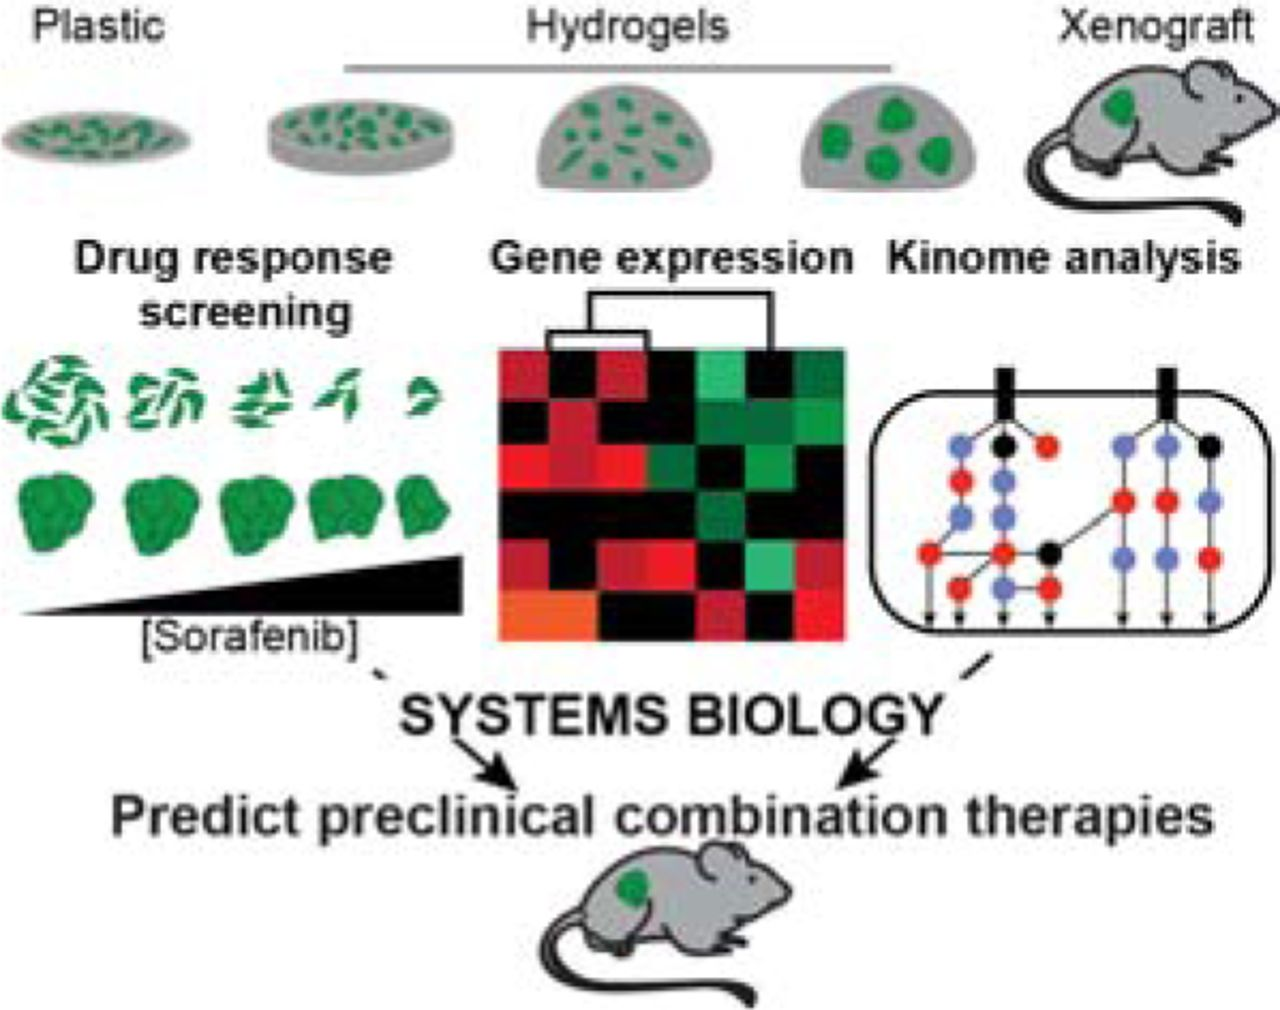 A Biomaterial Screening Approach Reveals Microenvironmental